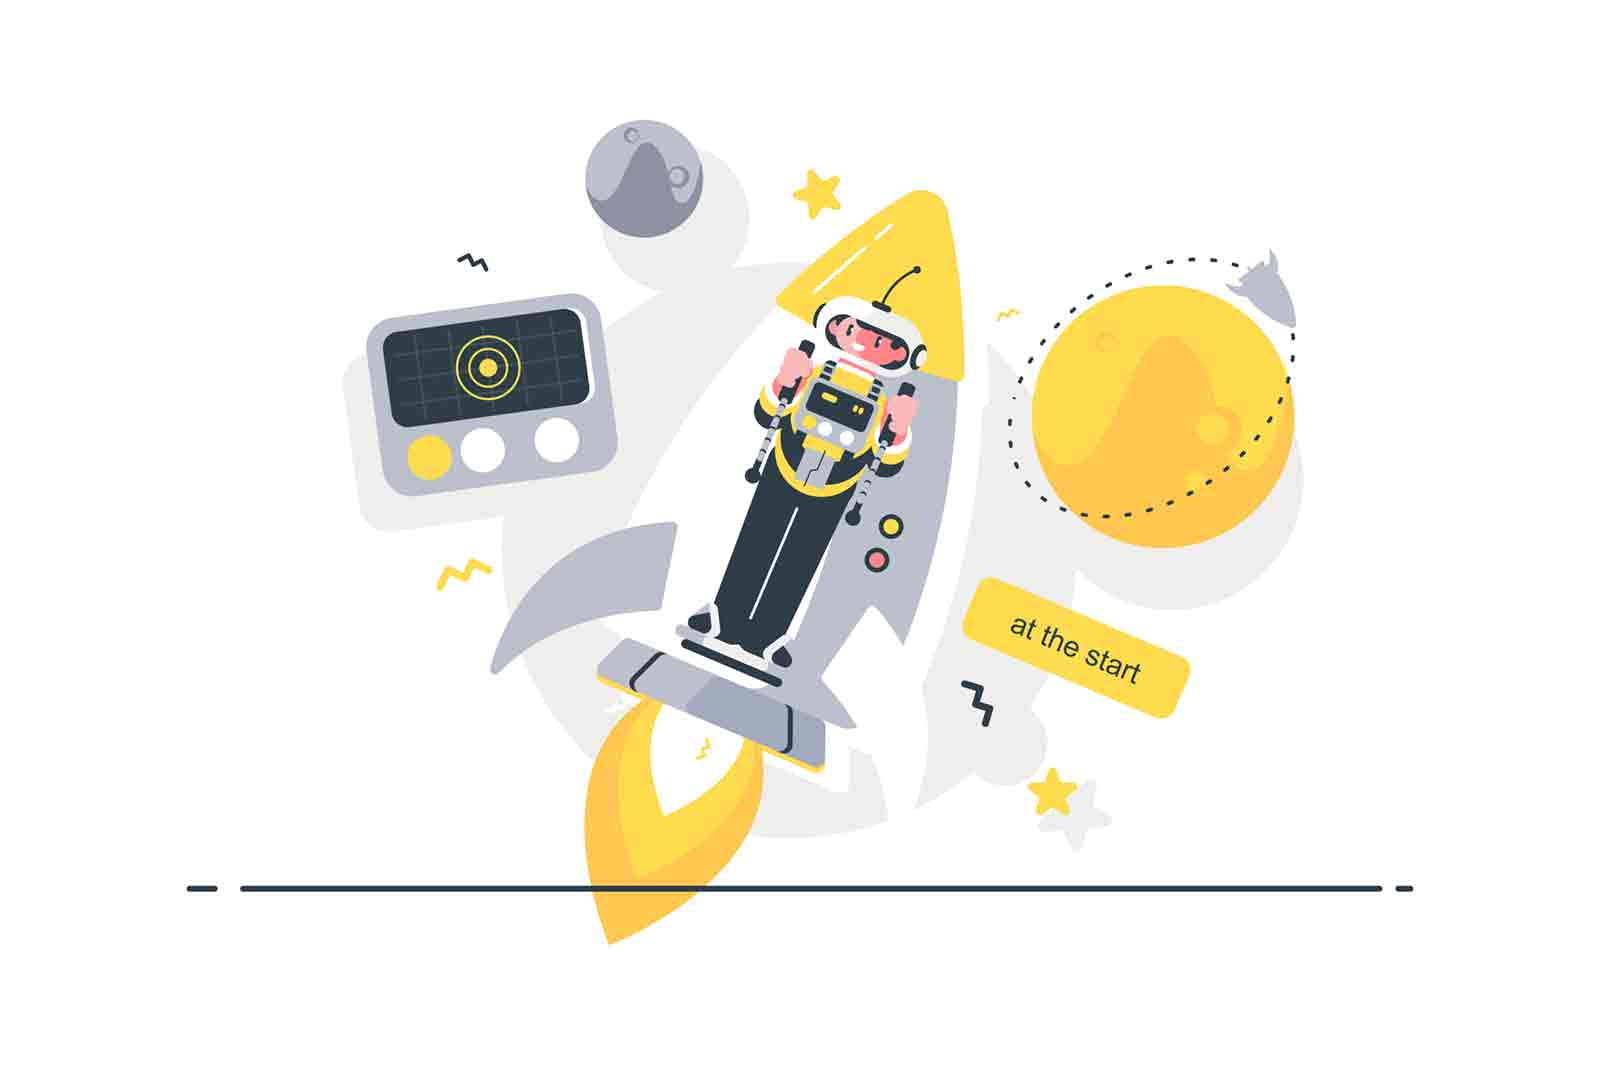 Start up on rocket jet pack vector illustration. Guy wearing spacesuit and flying on spaceship to cosmos flat style design. Stars and planets on background. Spacecraft launch concept